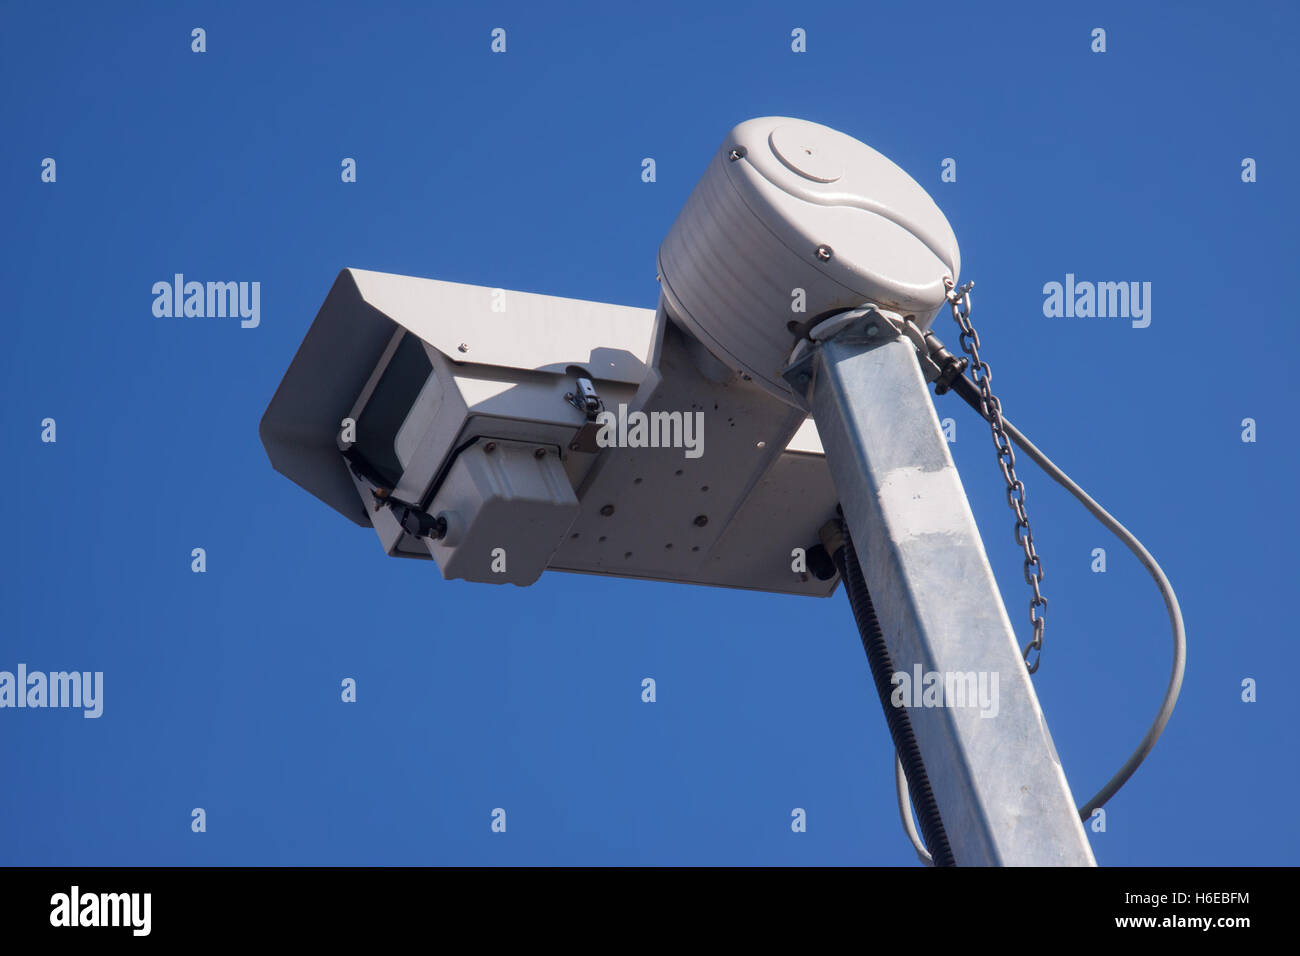 A closed circuit television camera cctv against a clear blue sky - Stock Image